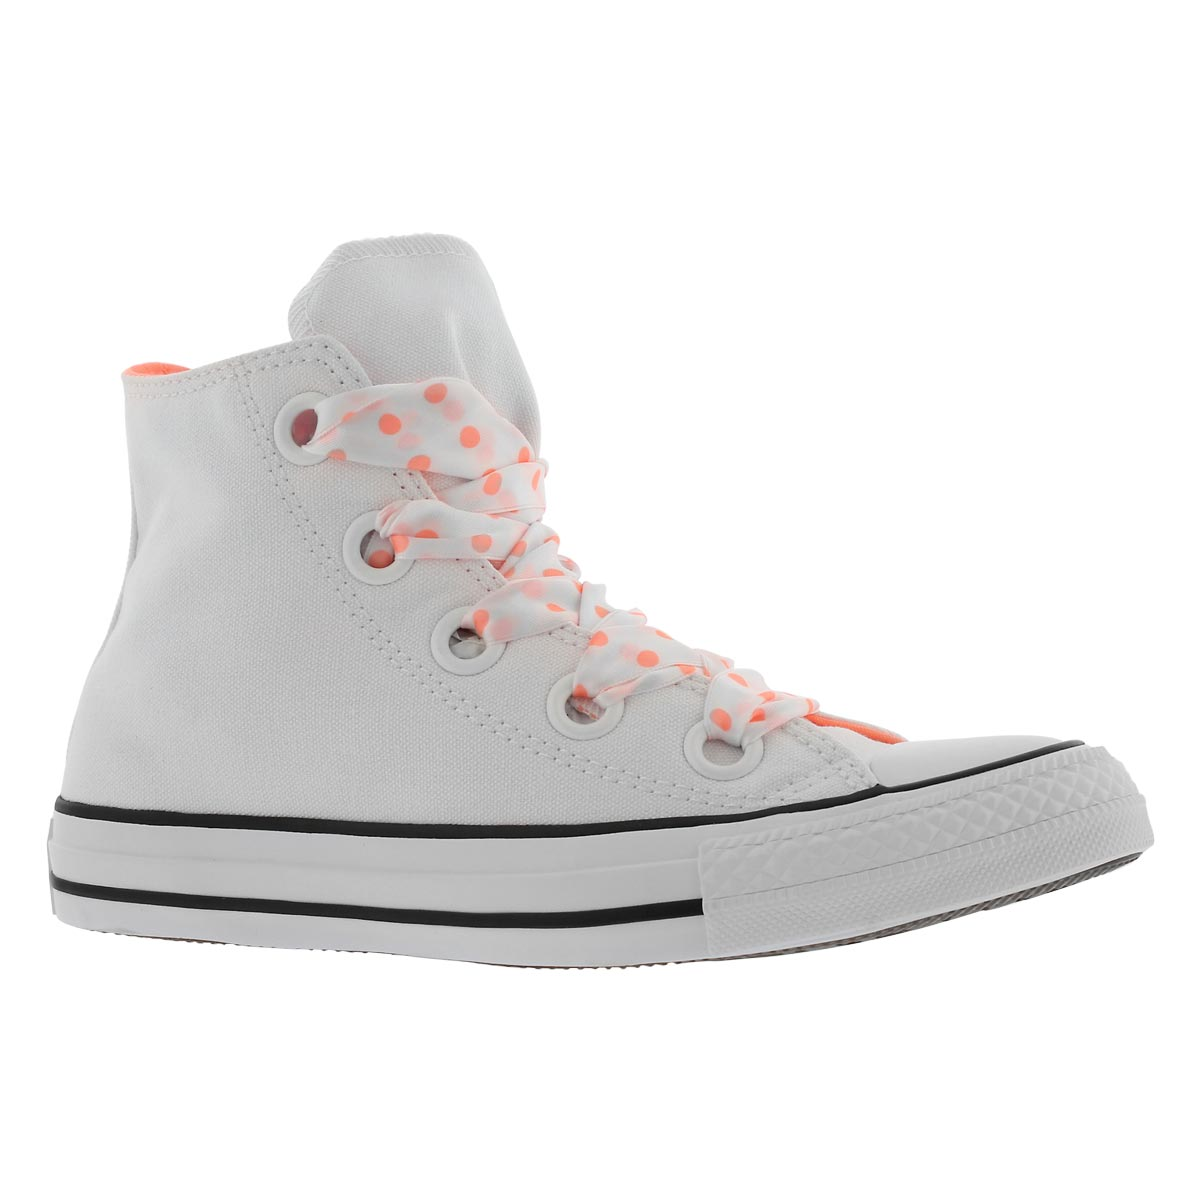 Women's CT ALL STAR BIG EYELETS wht/blk hi tops